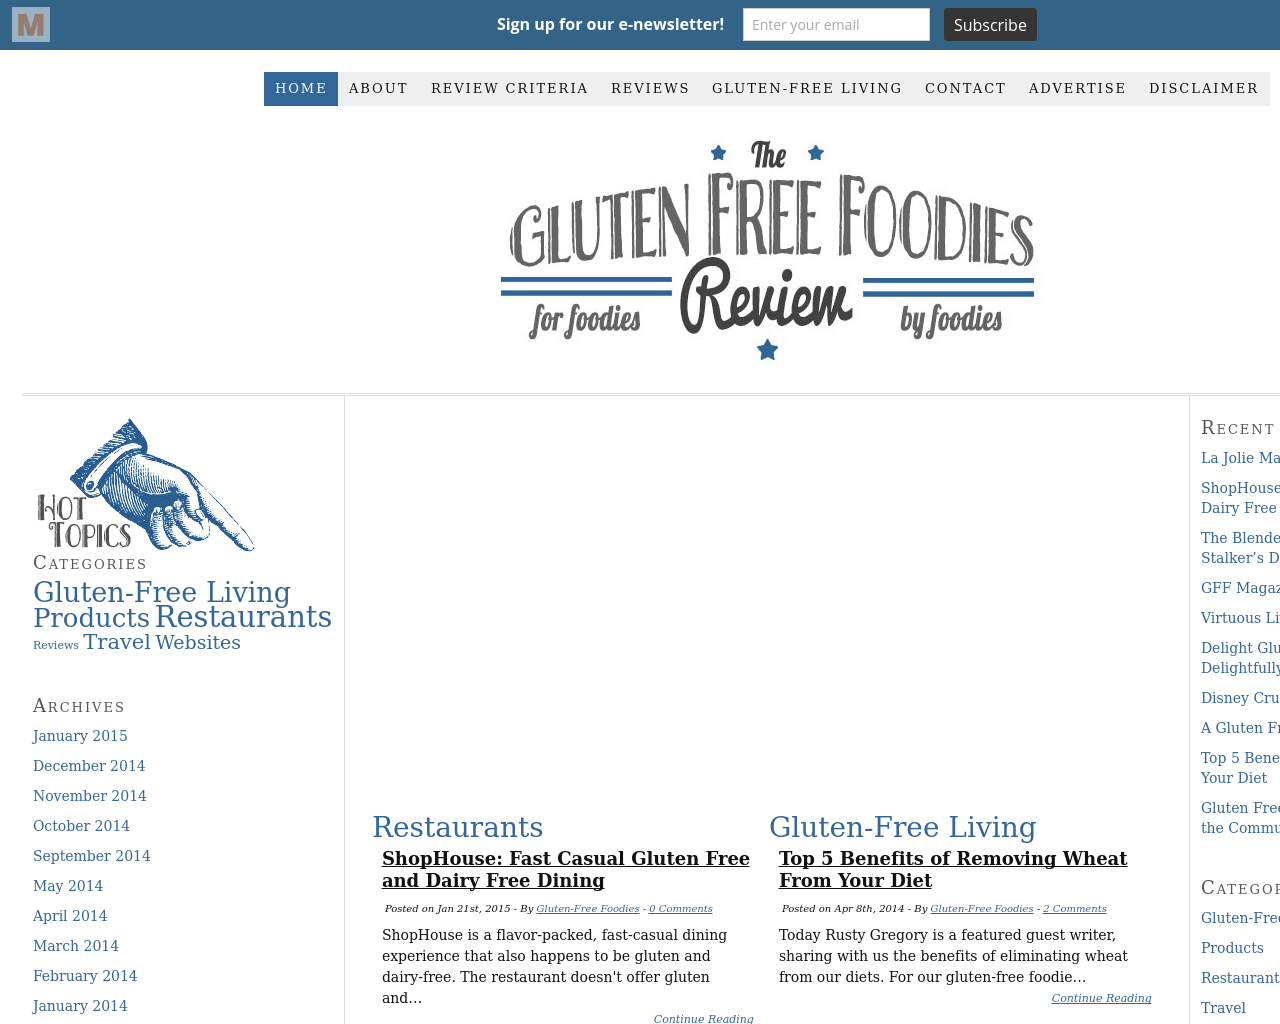 Gluten-Free-Foodies-Review-Advertising-Reviews-Pricing